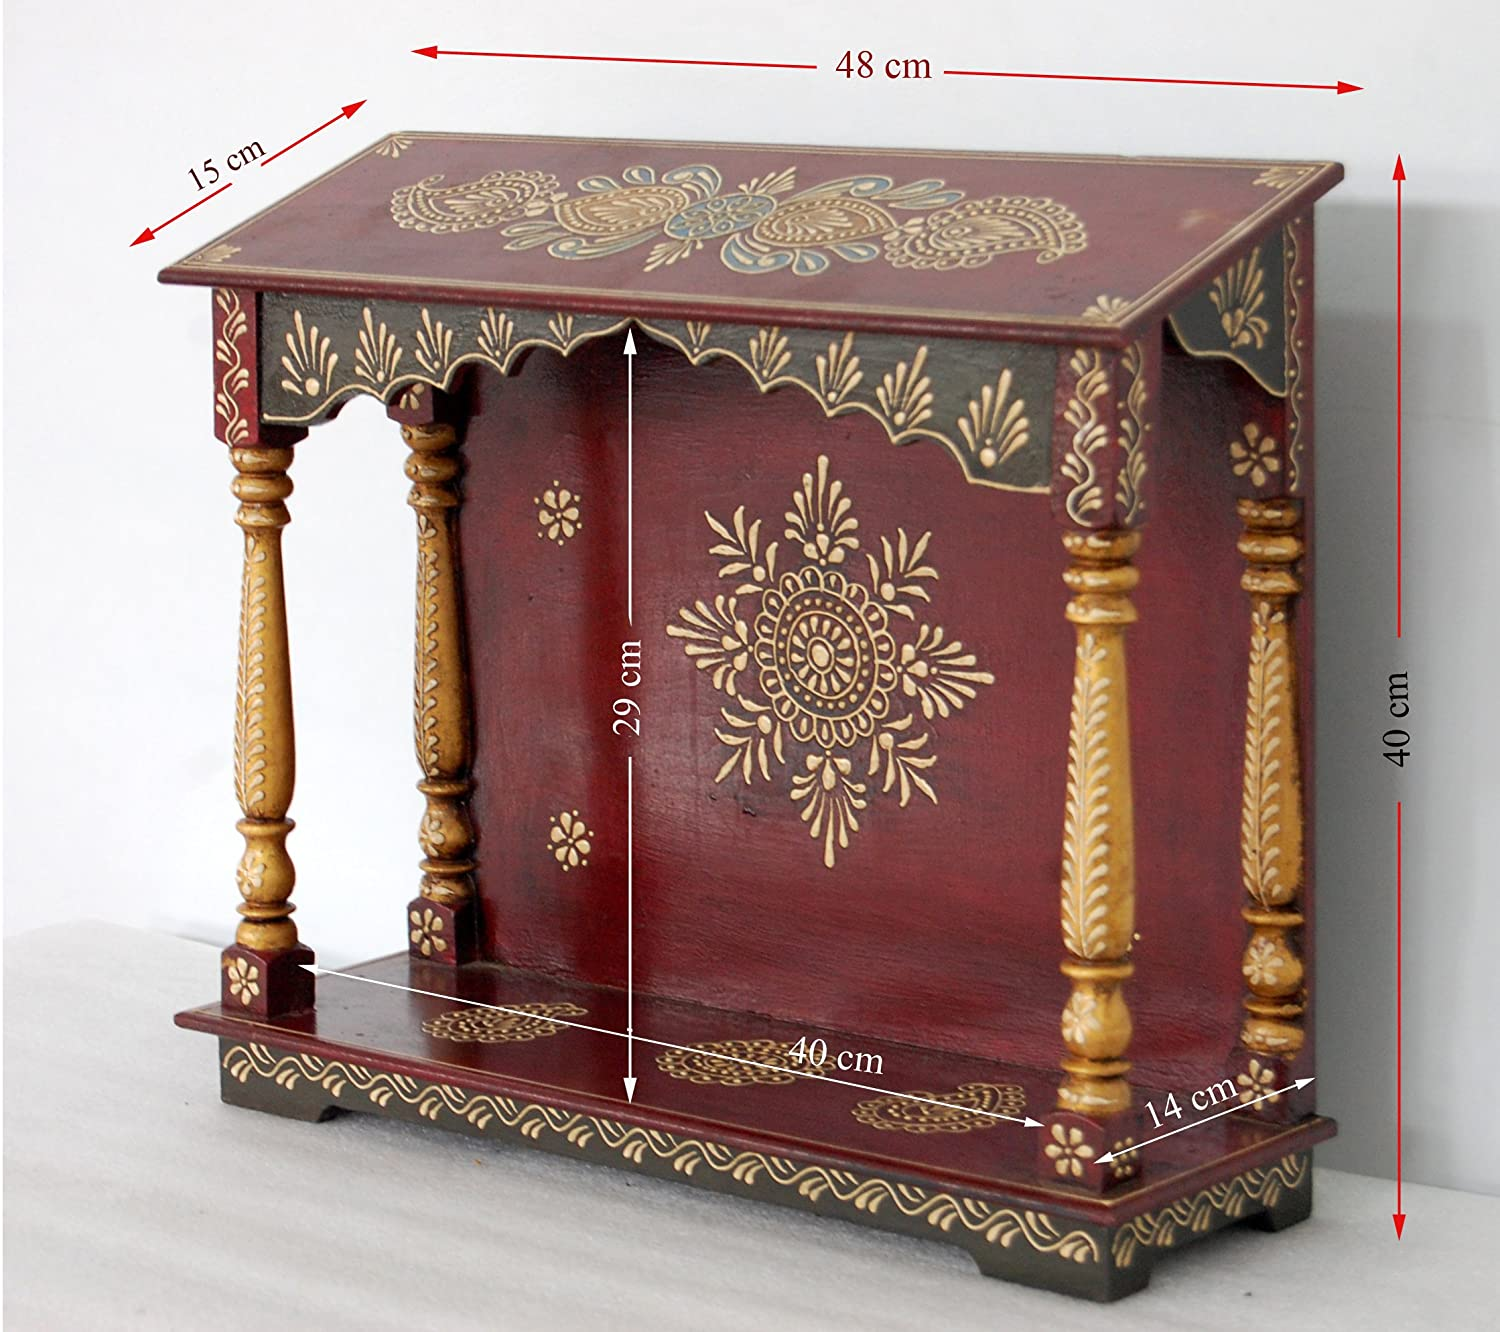 Buy DDass Small Pooja Mandir For Home Wooden Home Temple Pooja - Pooja mandir for home designs